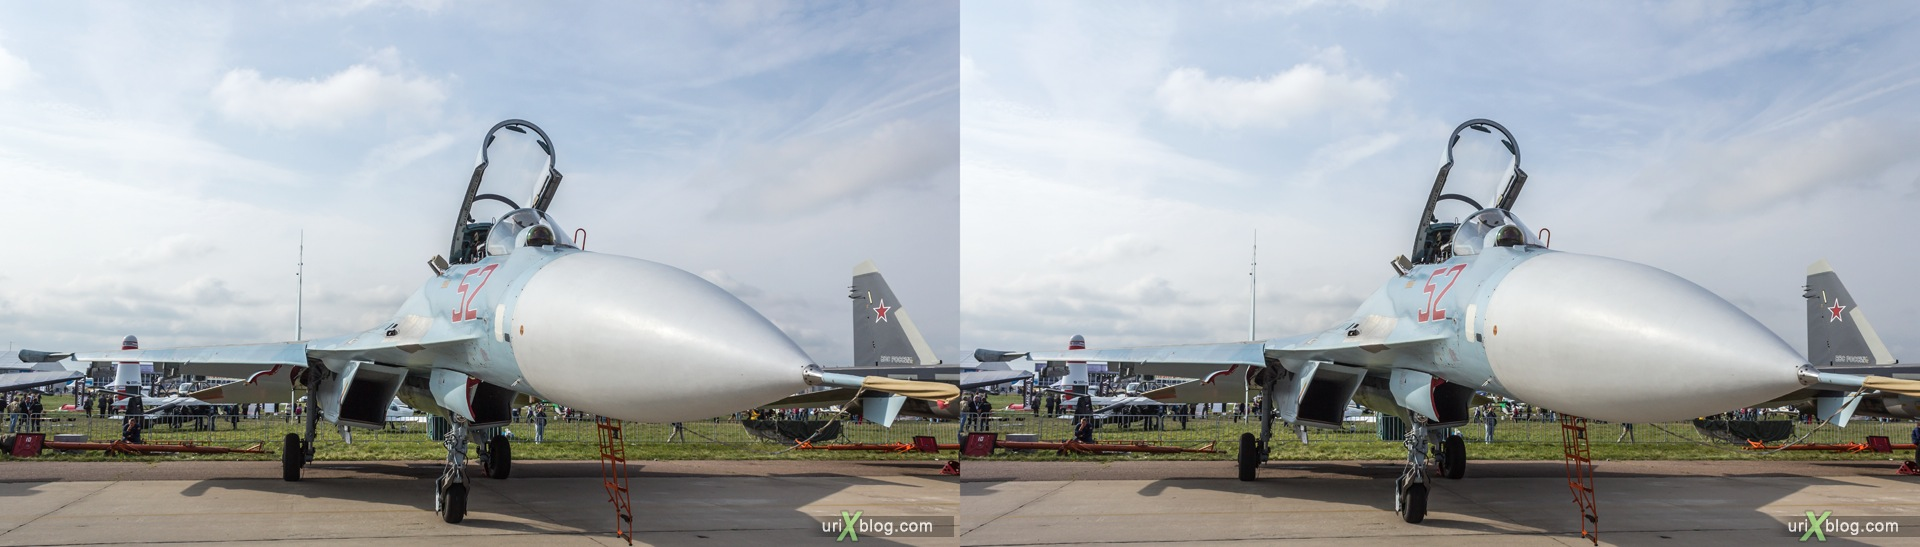 2013, Su-27SM3, MAKS, International Aviation and Space Salon, Russia, Soviet, USSR, Ramenskoye airfield, airplane, 3D, stereo pair, cross-eyed, crossview, cross view stereo pair, stereoscopic